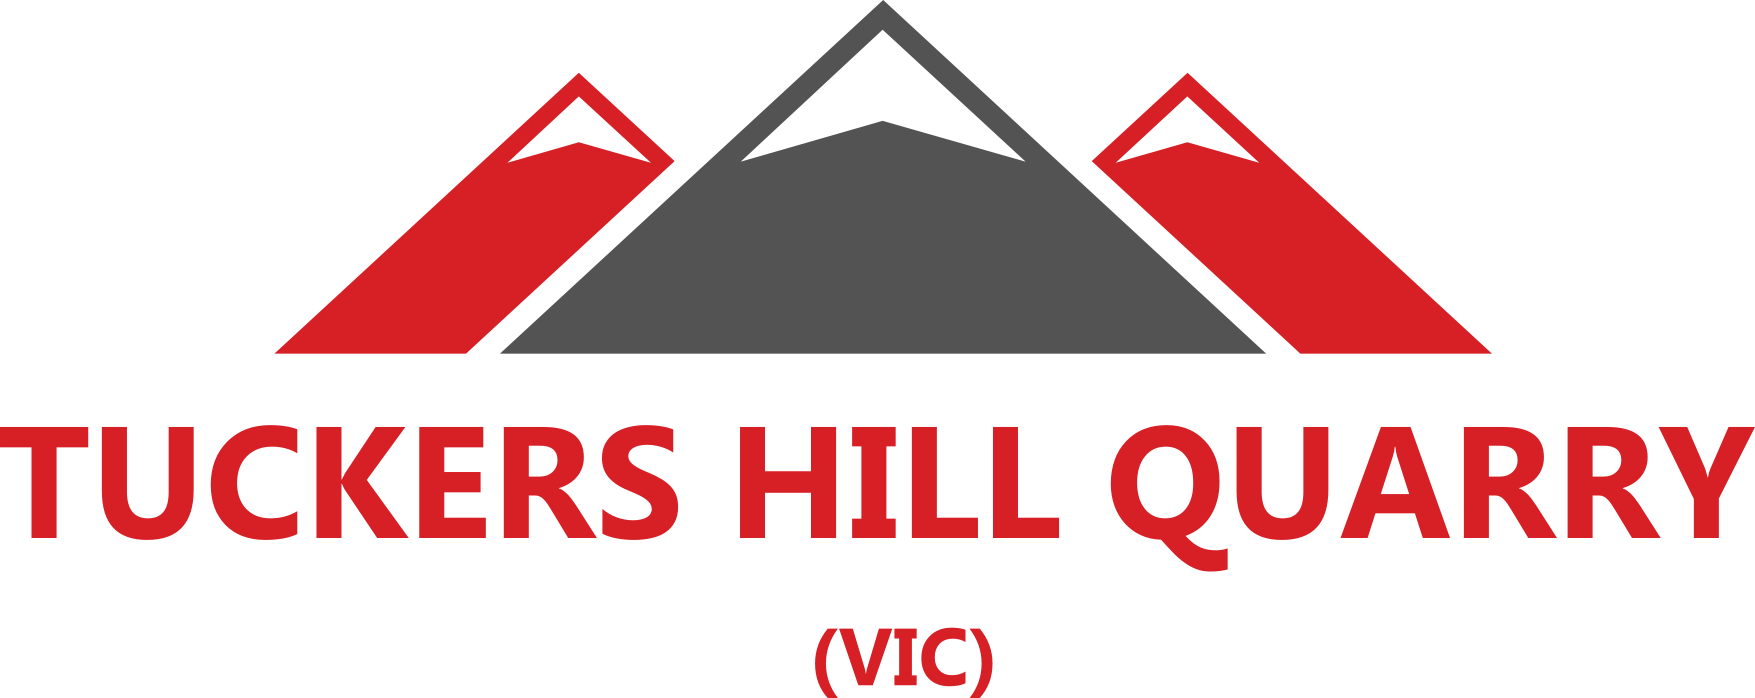 Tuckers Hill Quarry (VIC)